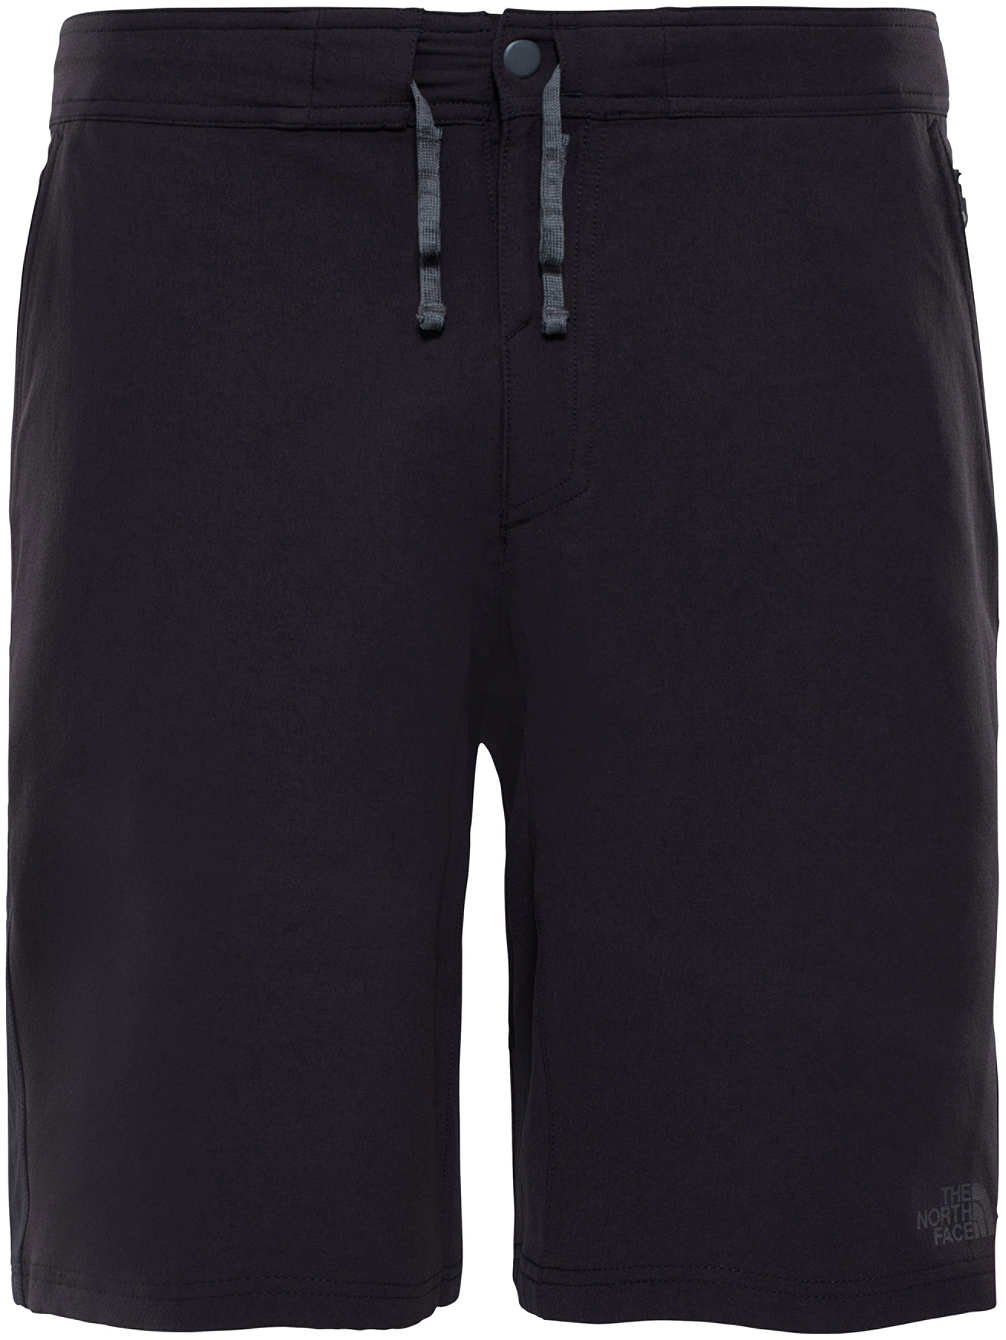 THE NORTH FACE M Kilowatt, Shorts